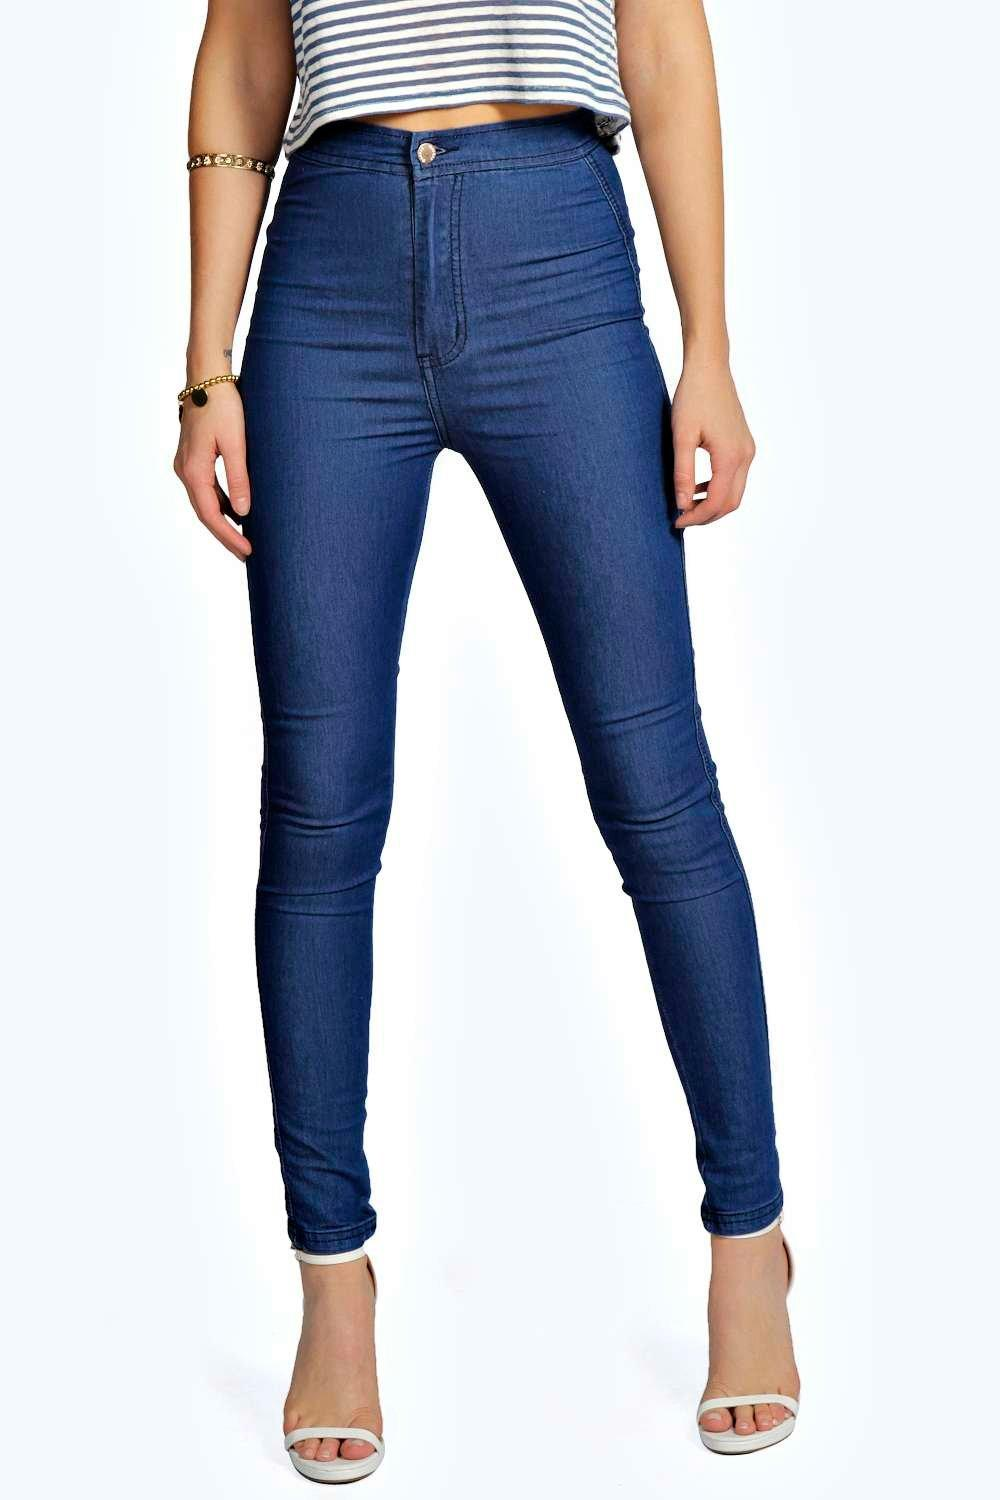 Where to buy high waist jeans